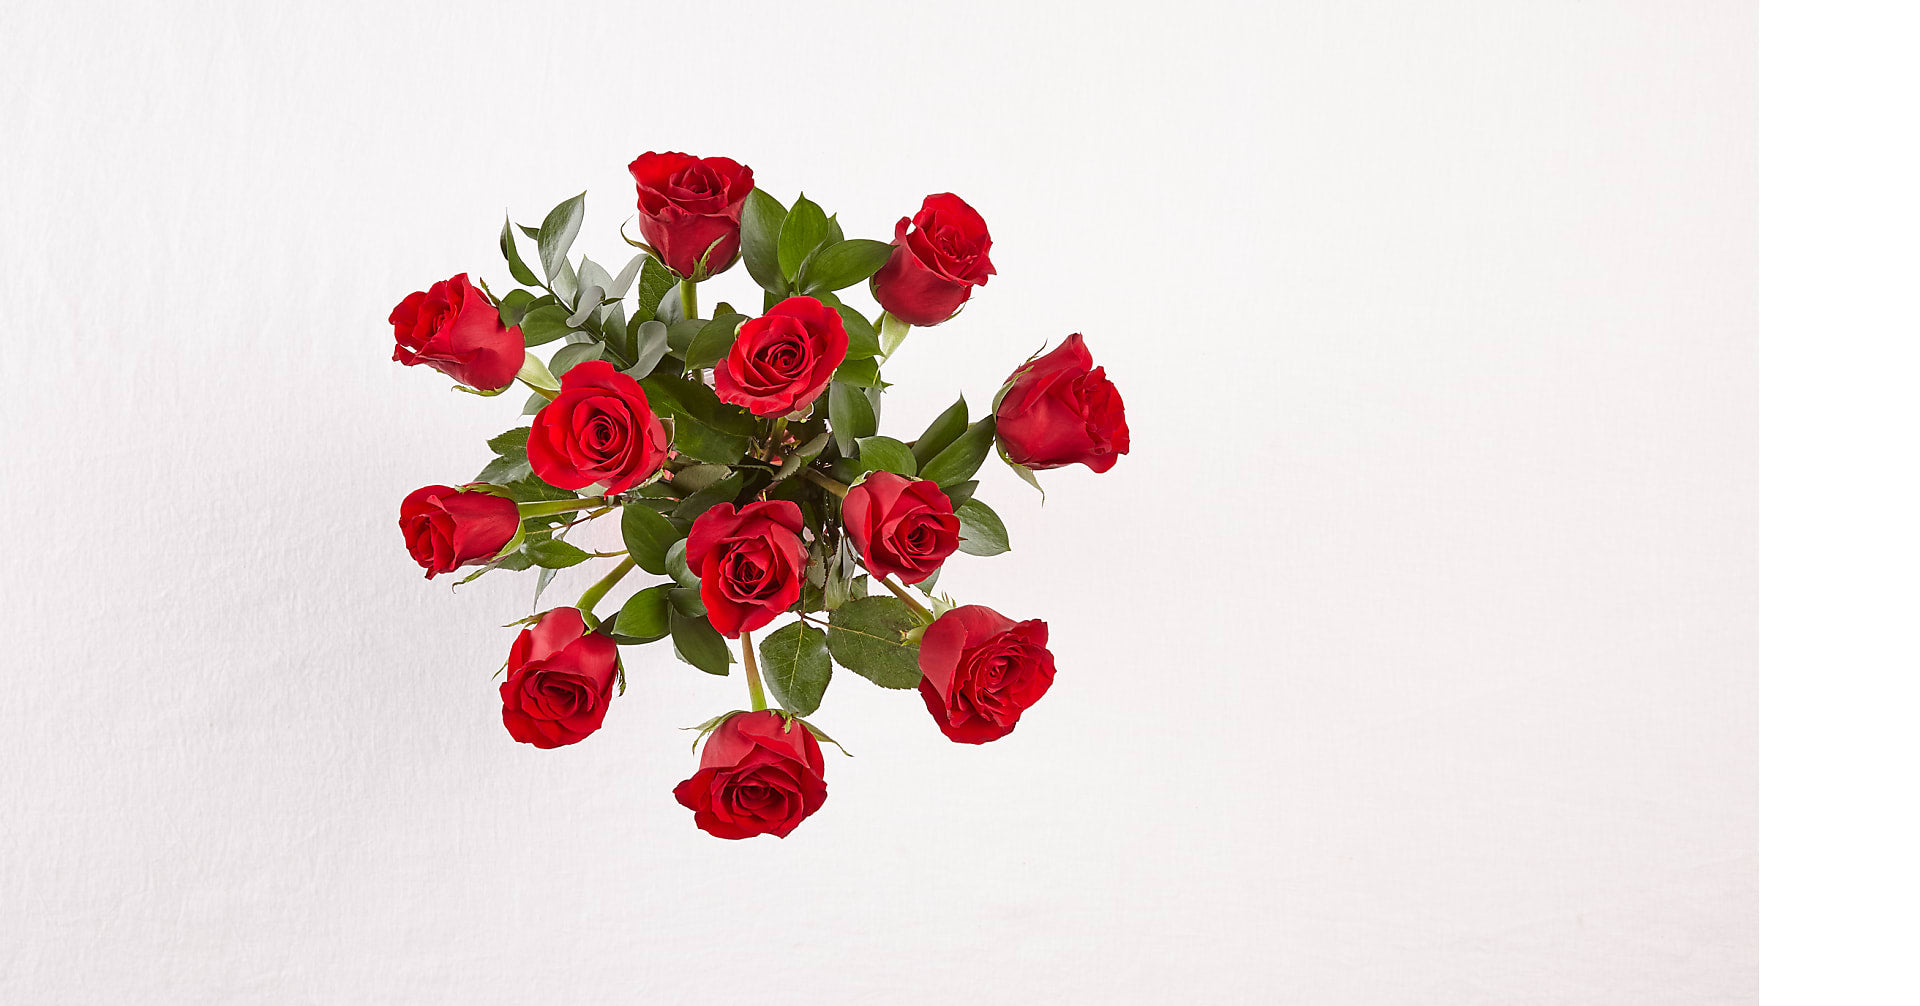 Red 1 Dozen Roses - Image 3 Of 4